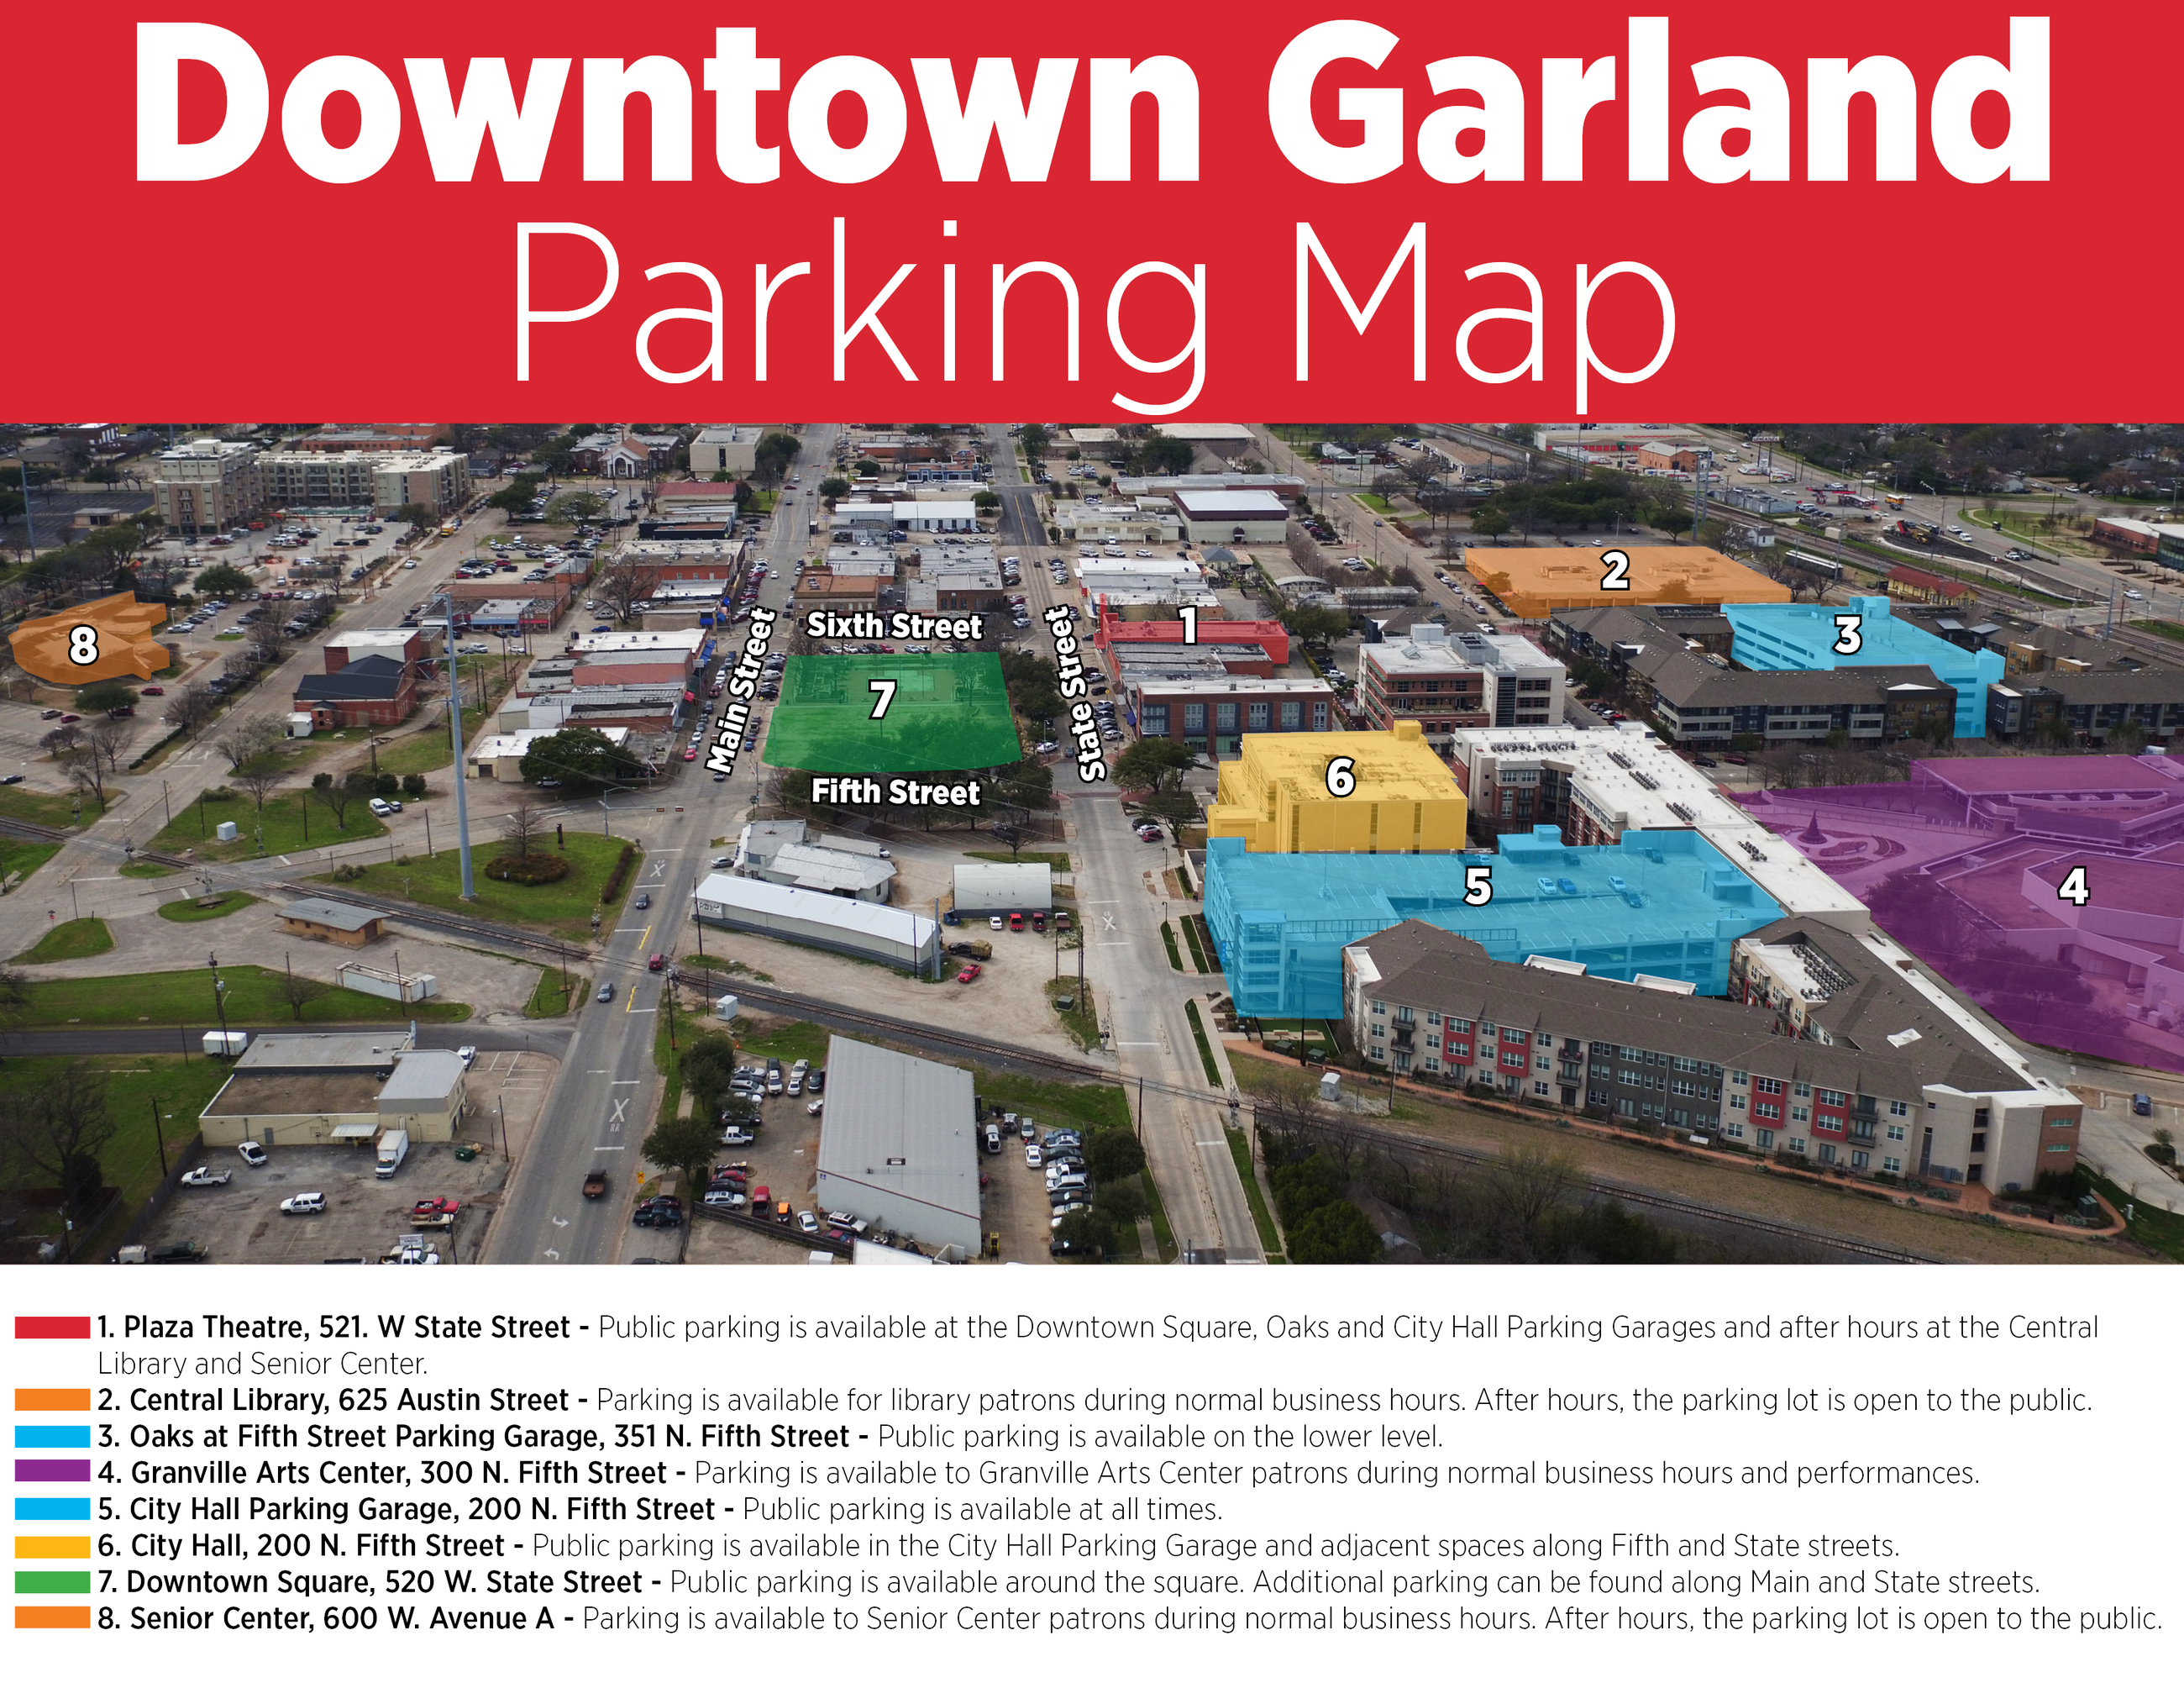 A map of downtown Garland parking